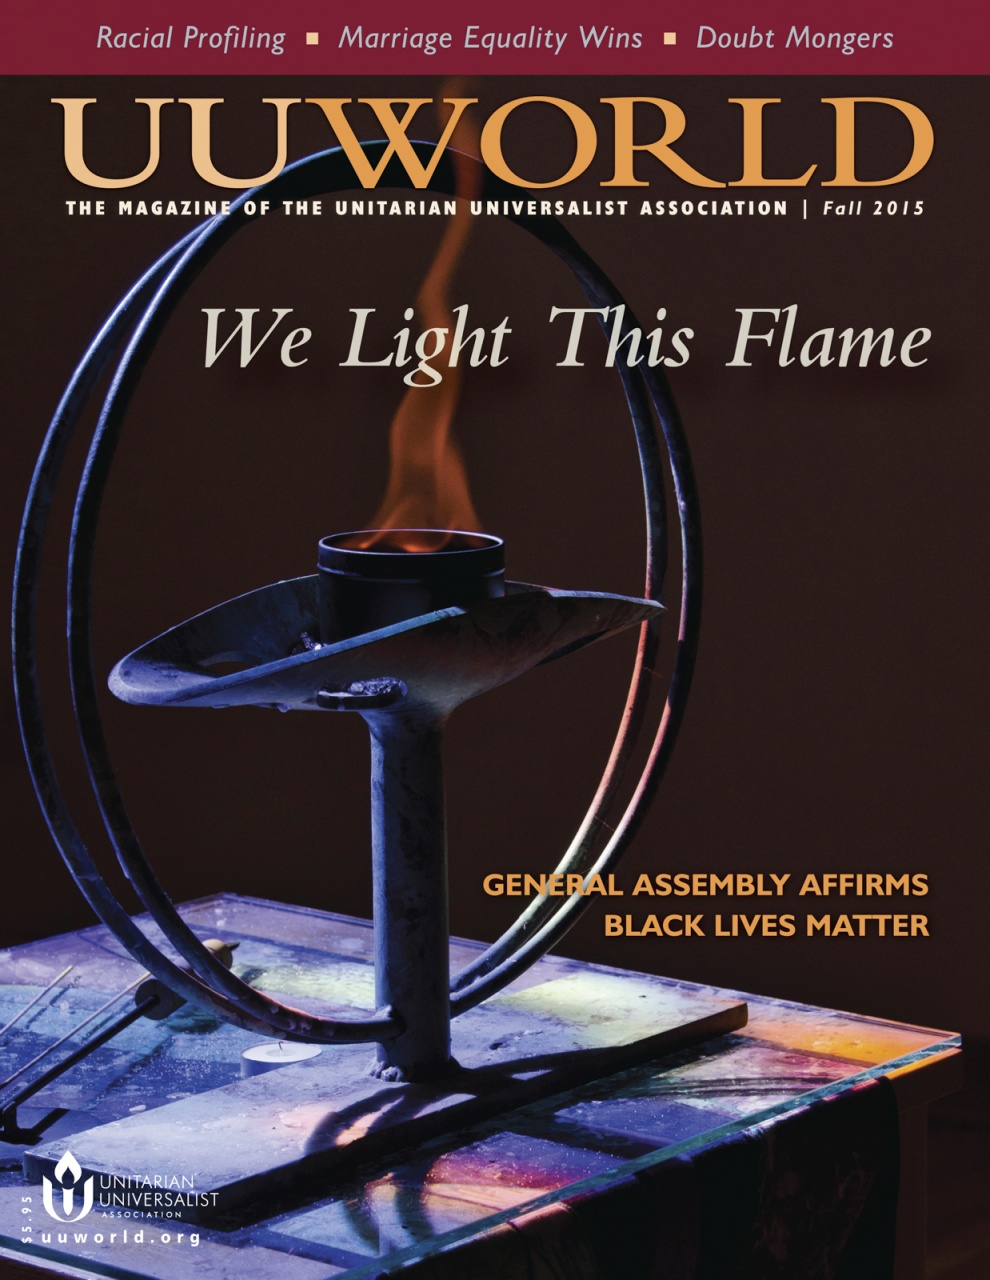 Spotlight on Durango: UU World Magazine